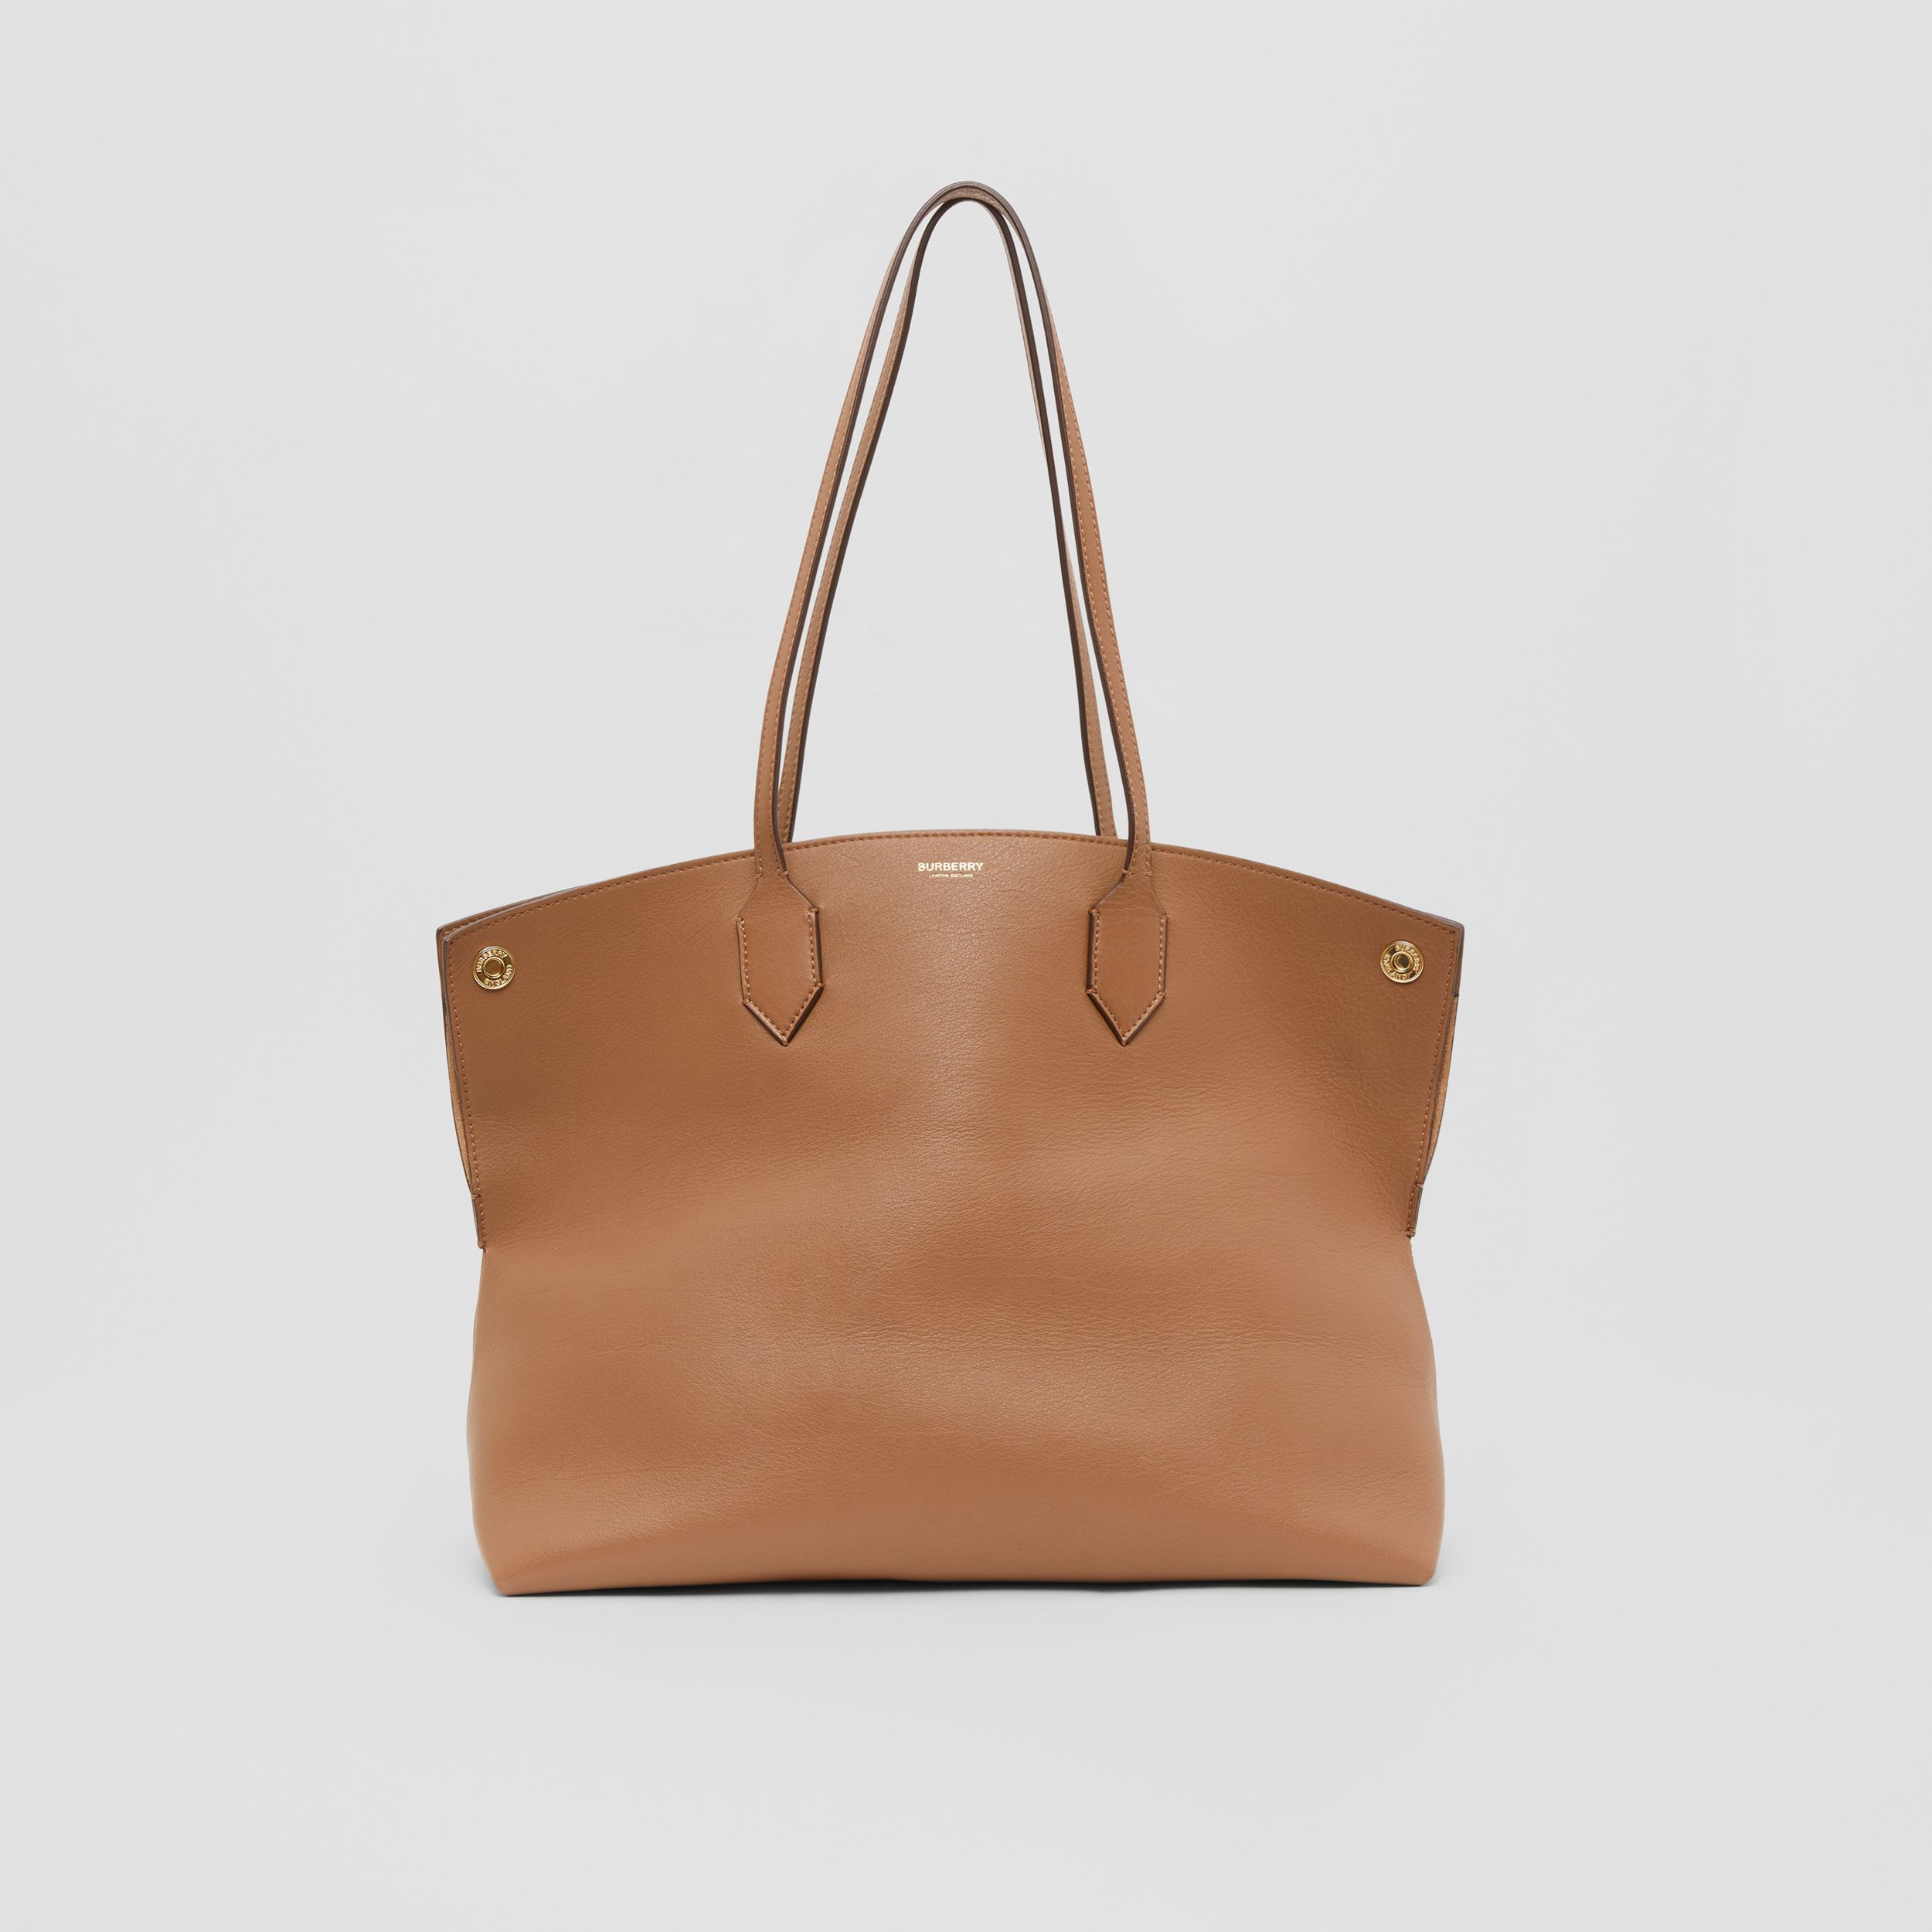 Medium Leather Society Tote in Dusty Caramel - Women | Burberry - 1